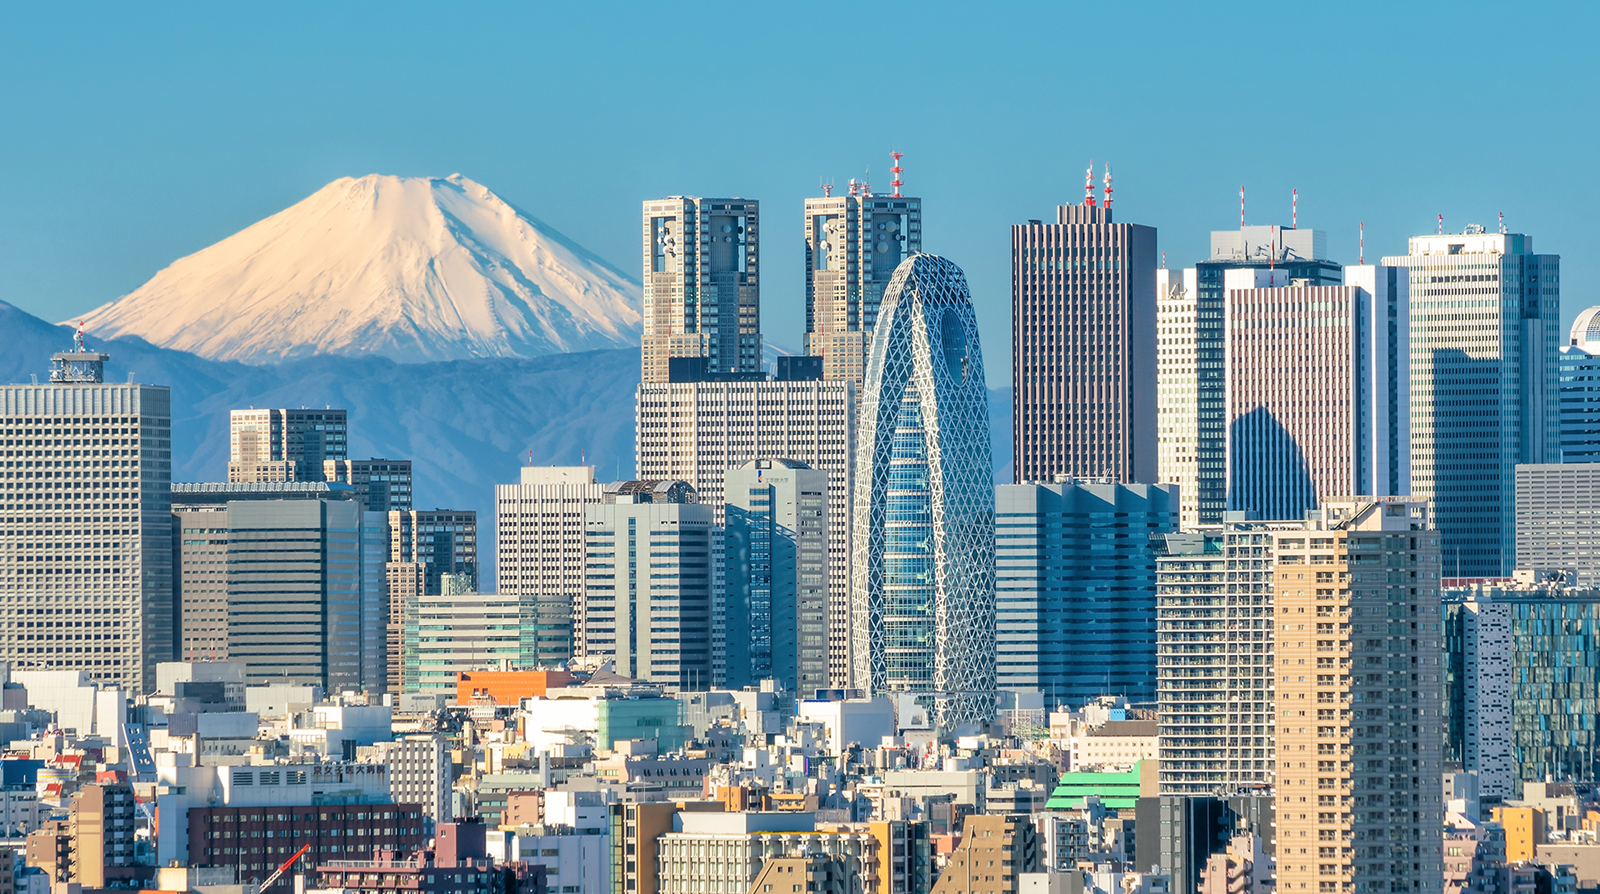 Tokyo is home to the 2021 Olympic Games